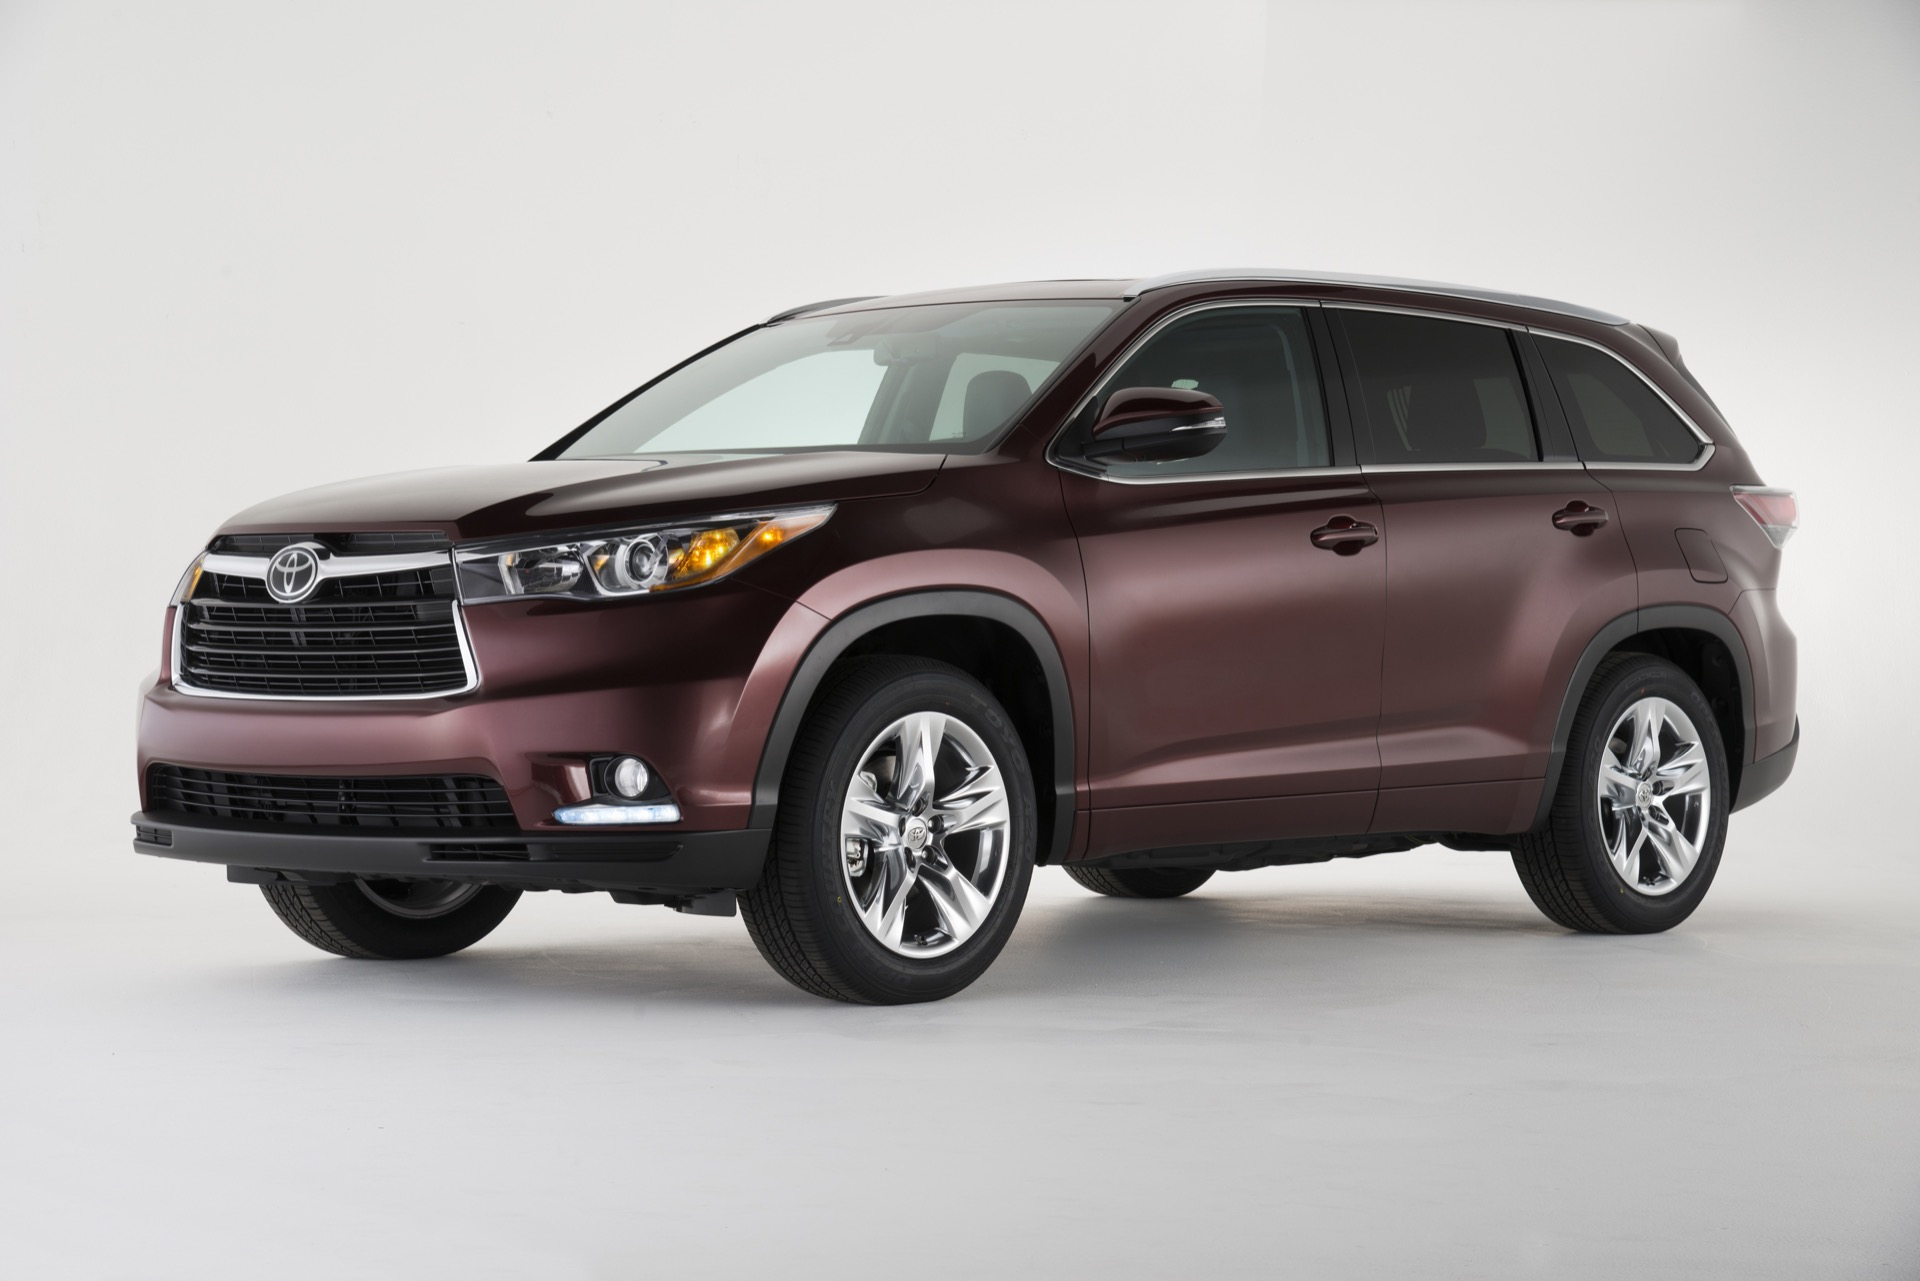 2016 toyota highlander_100529836_h 2016 toyota highlander recalled for brake fluid issue 2016 toyota highlander wiring harness at panicattacktreatment.co